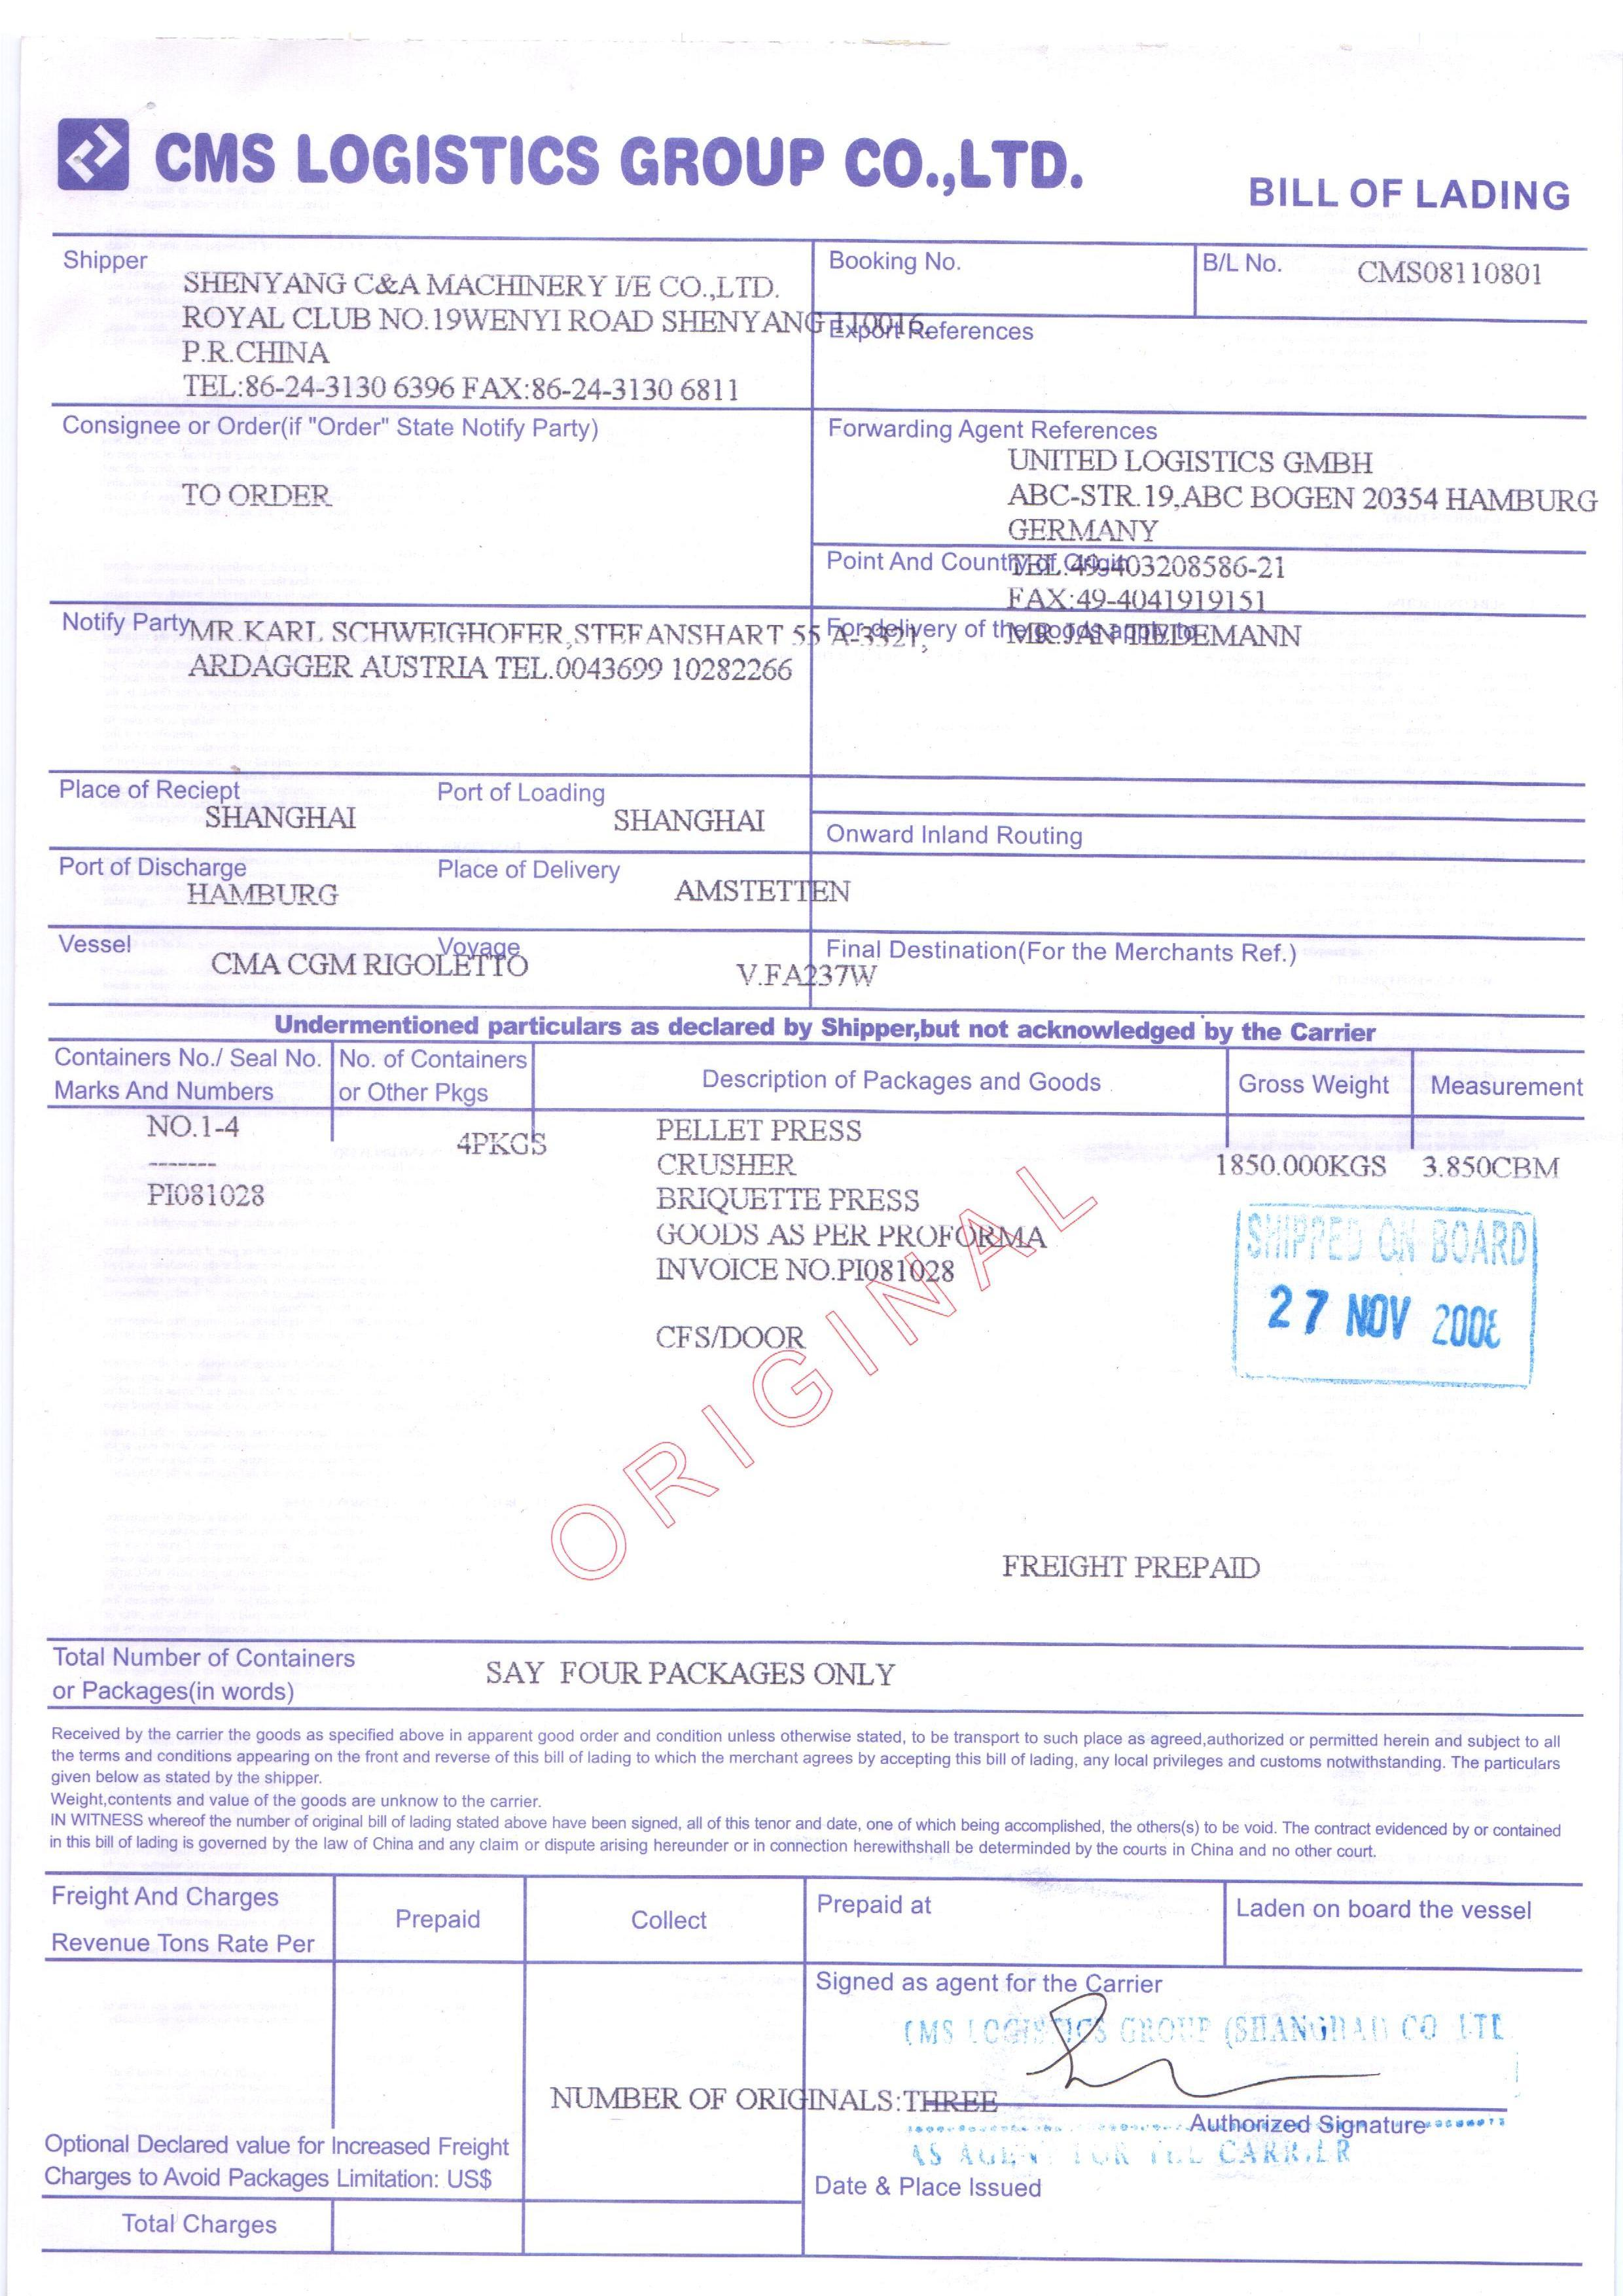 Bill Of Lading Blank Template – Sample Bill of Lading Form